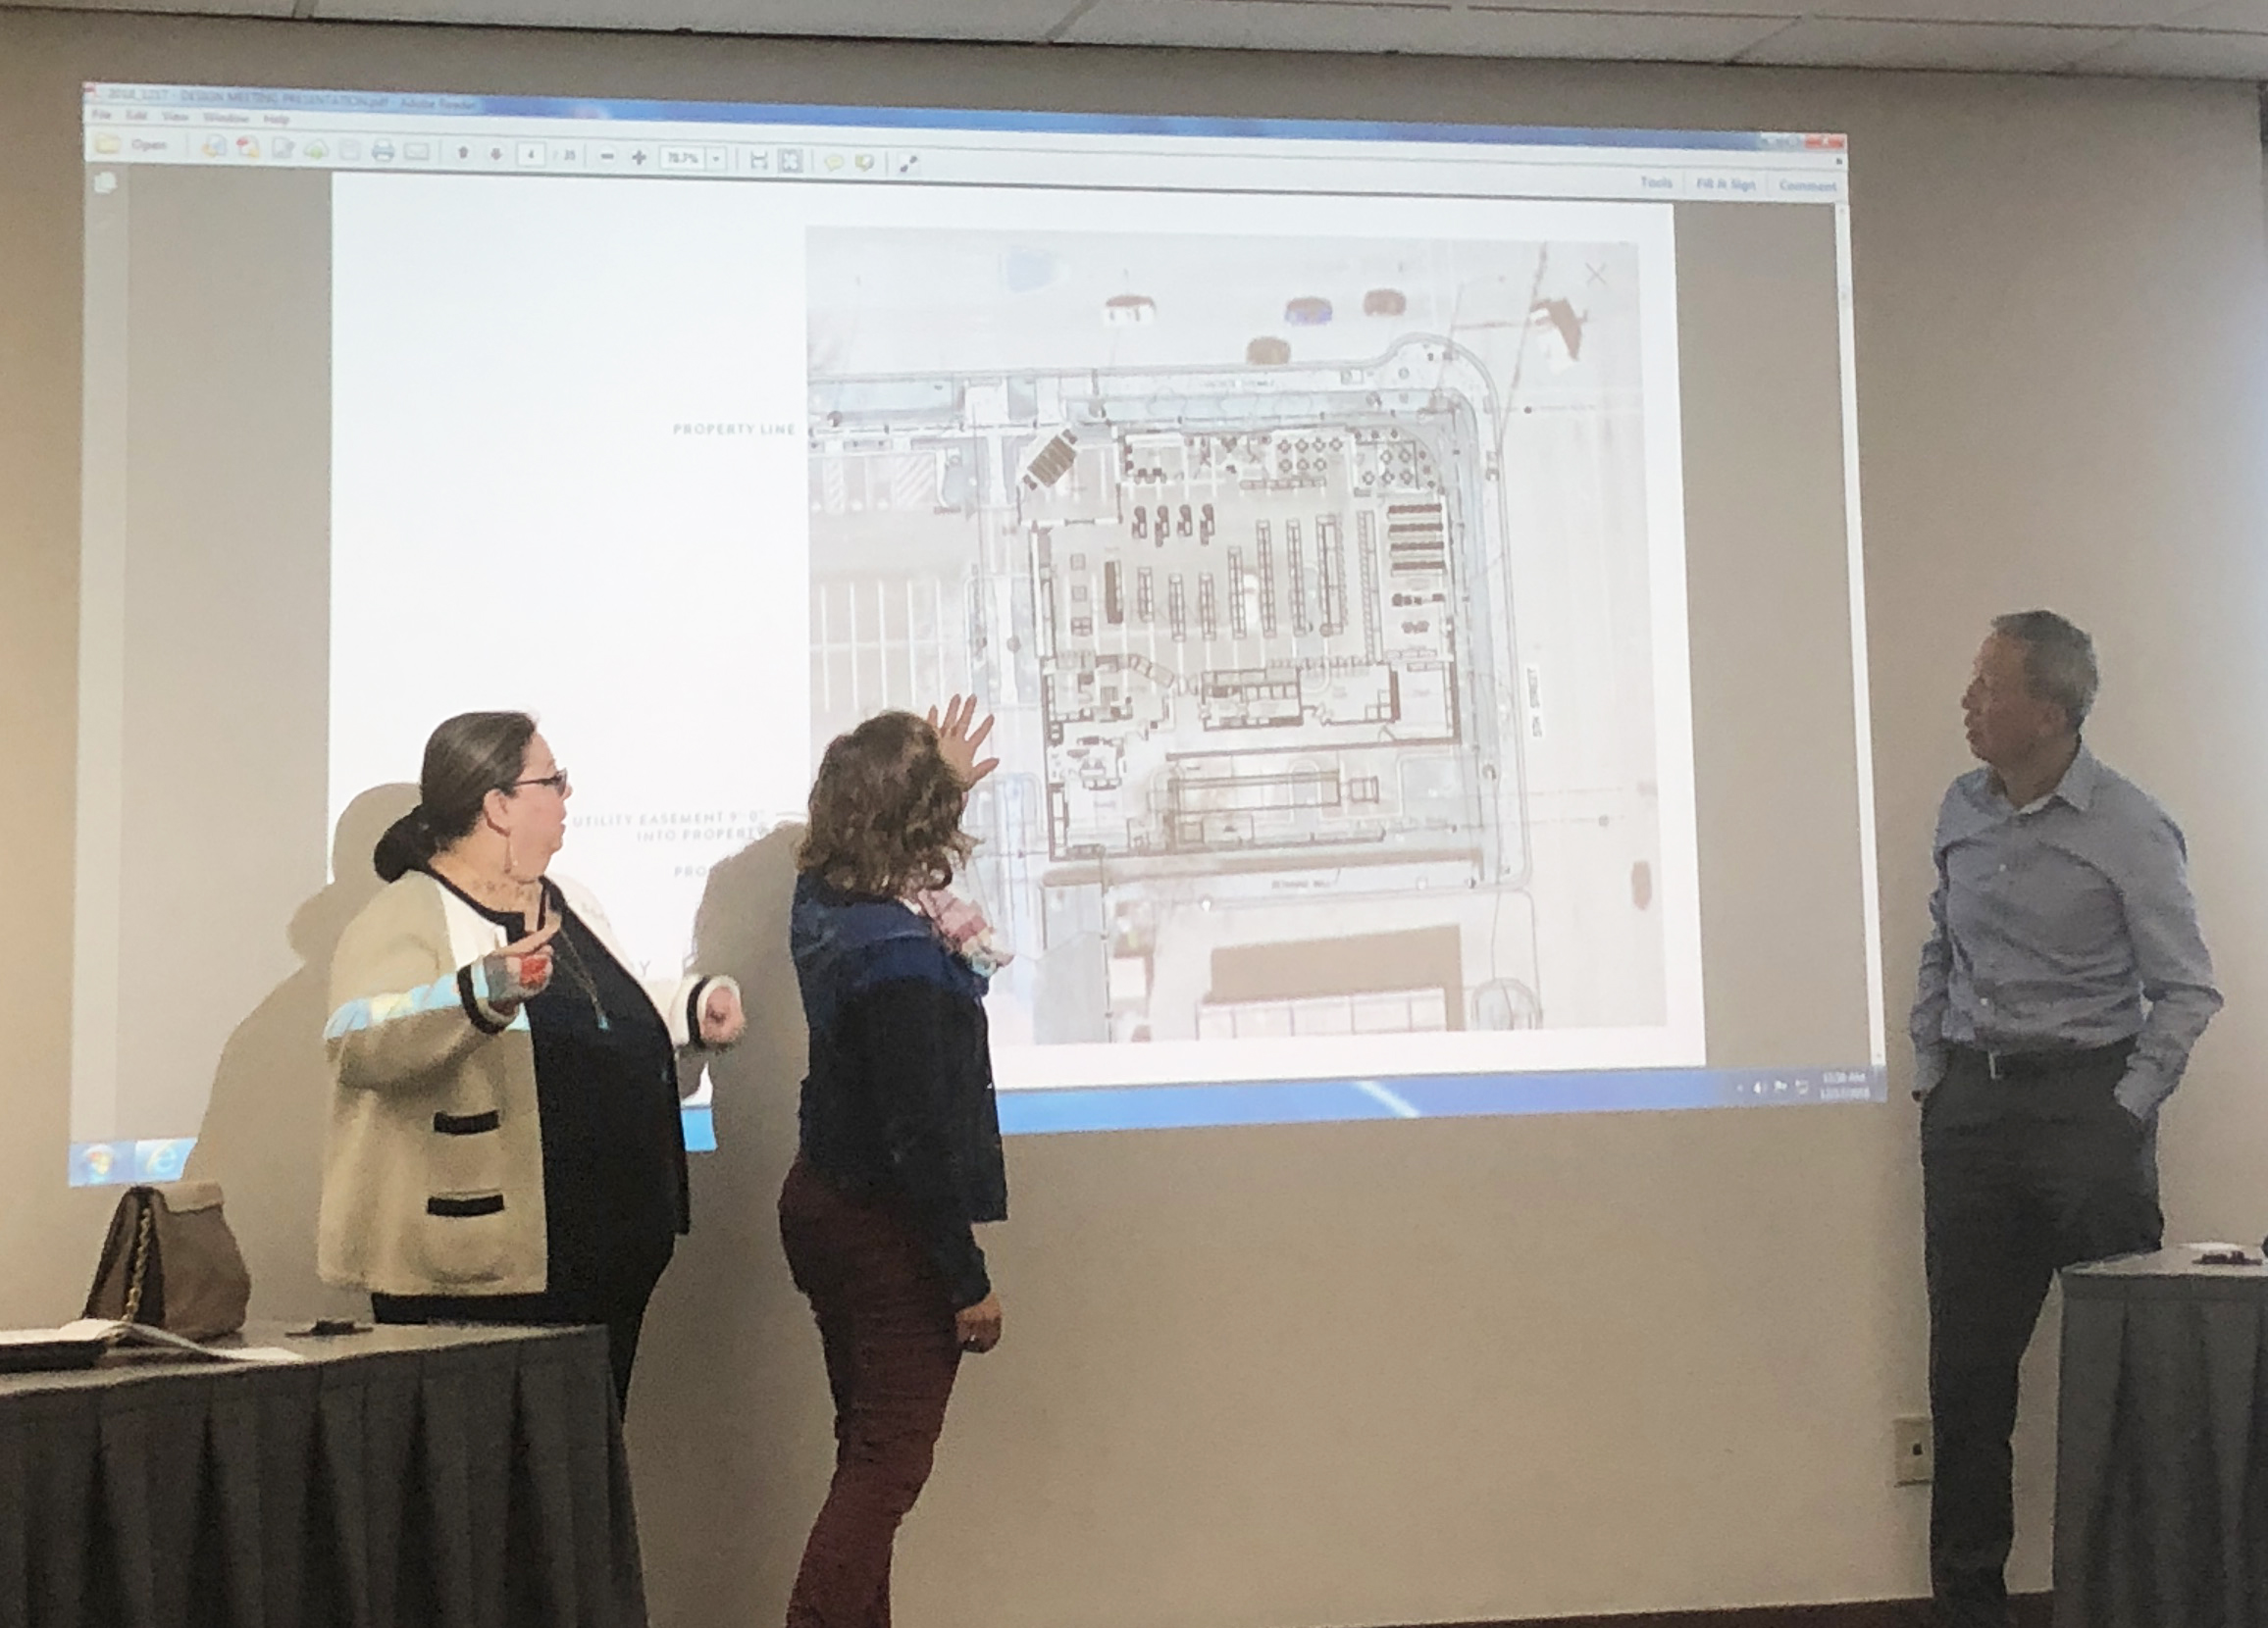 Rita (second from left) discusses the store's layout plans with Elizabeth Amirahmadi of International Architects Atelier and Peter Ho of CBC Real Estate Group.